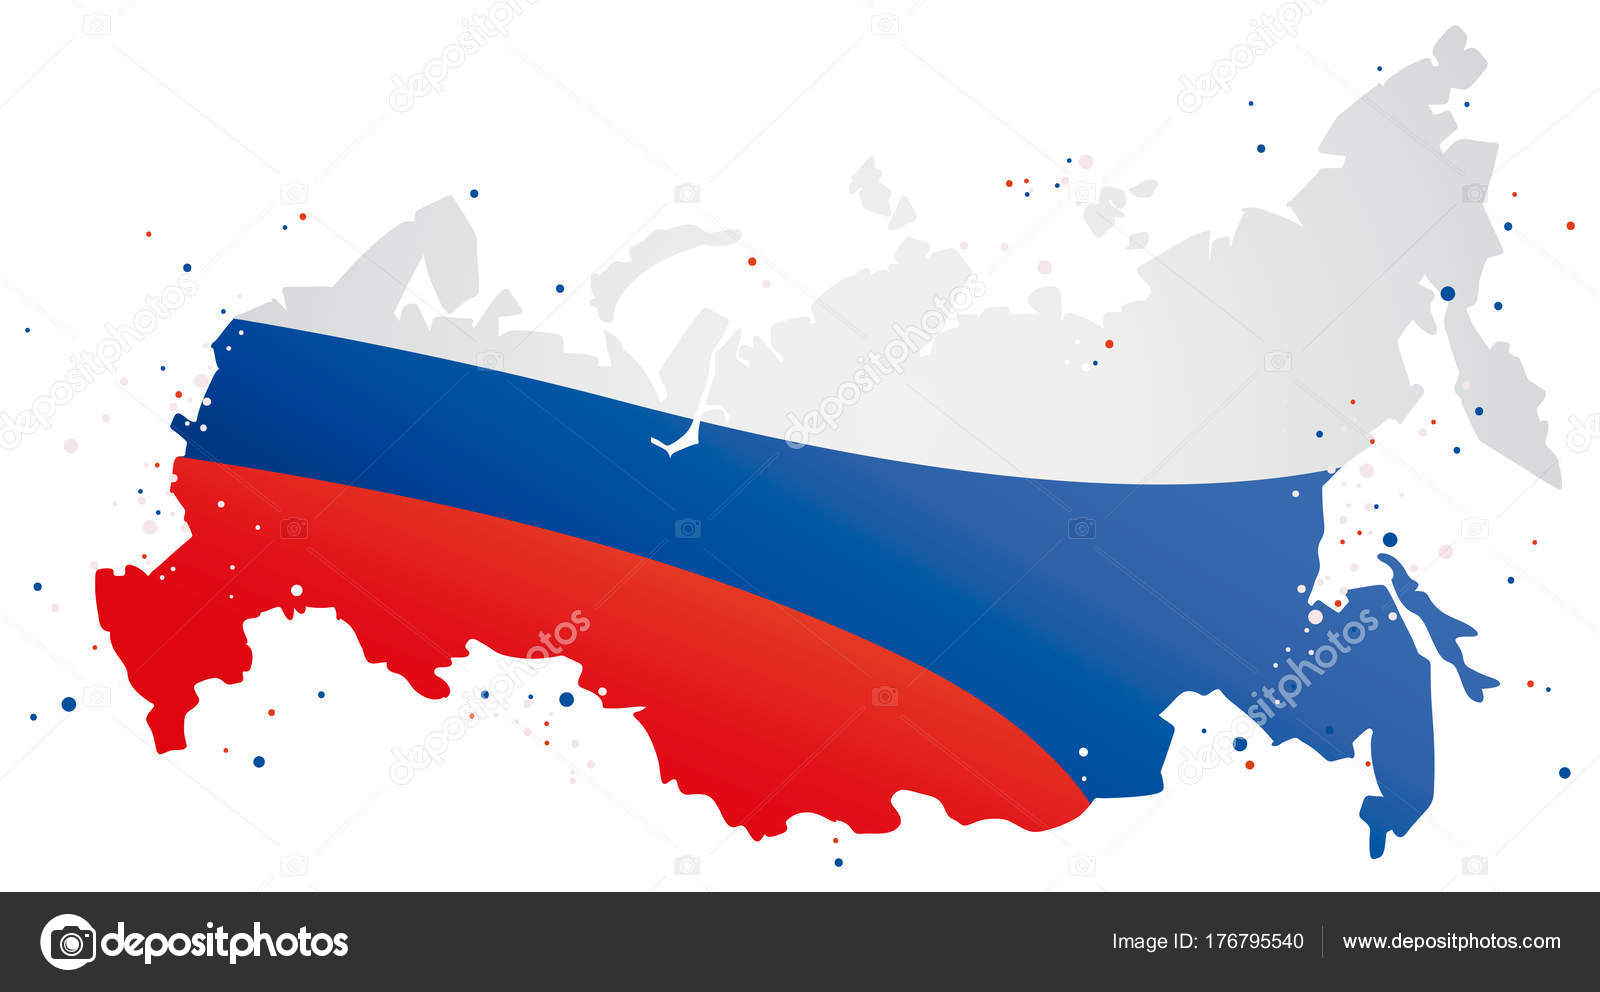 Flag Colors Russia Map White Background Colorful Dots ... on korea map, china map, poland map, australia map, united kingdom map, france map, iraq map, soviet union map, europe map, africa map, italy map, asia map, saudi arabia map, romania map, india map, baltic map, canada map, japan map, eurasia map, germany map,